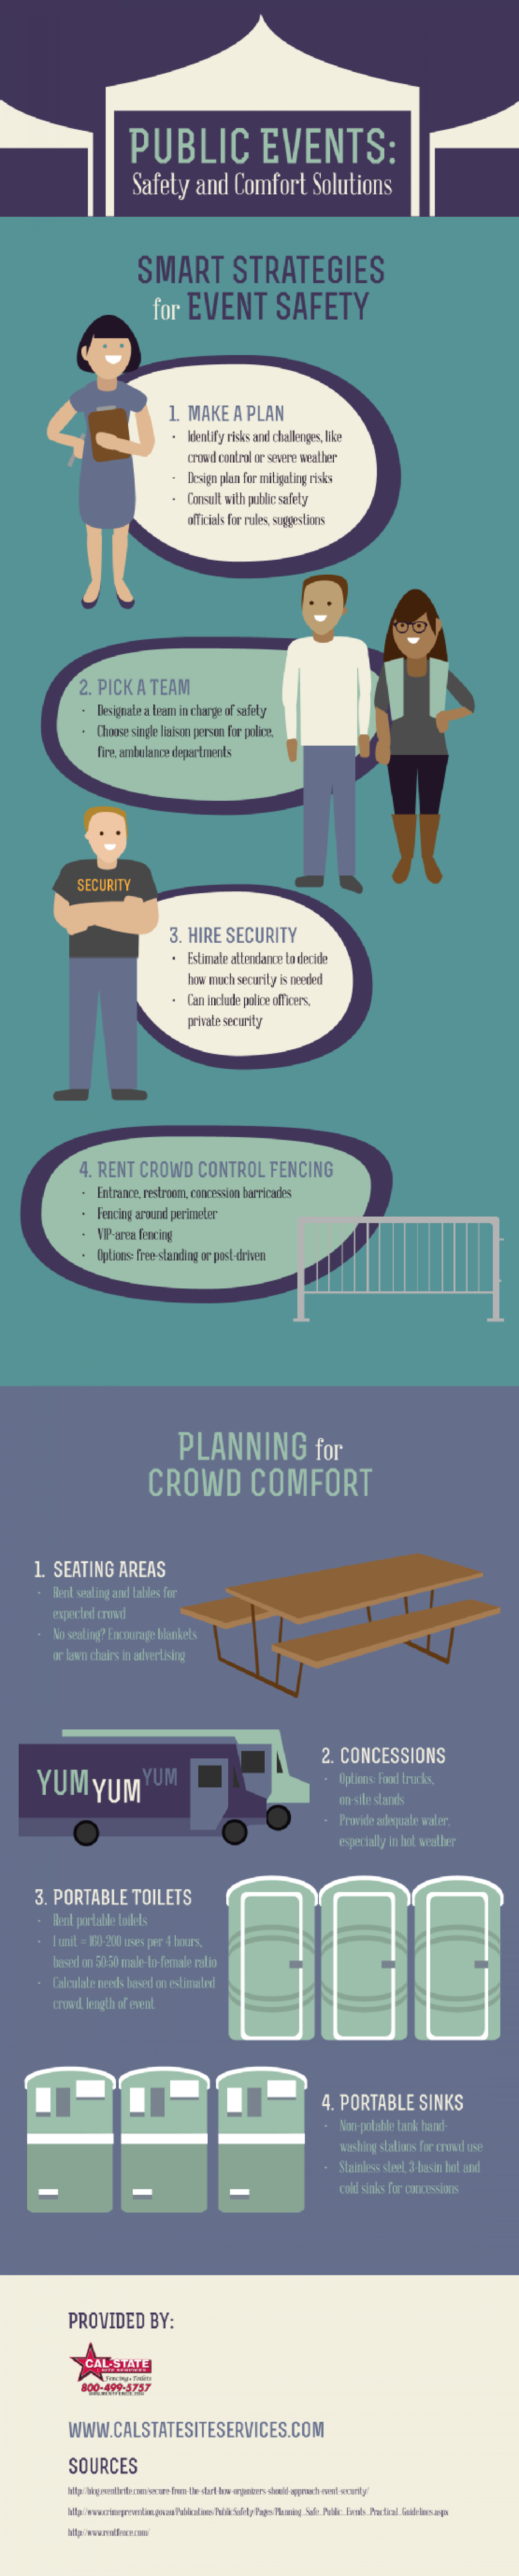 Public Events: Safety and Comfort Solutions Infographic